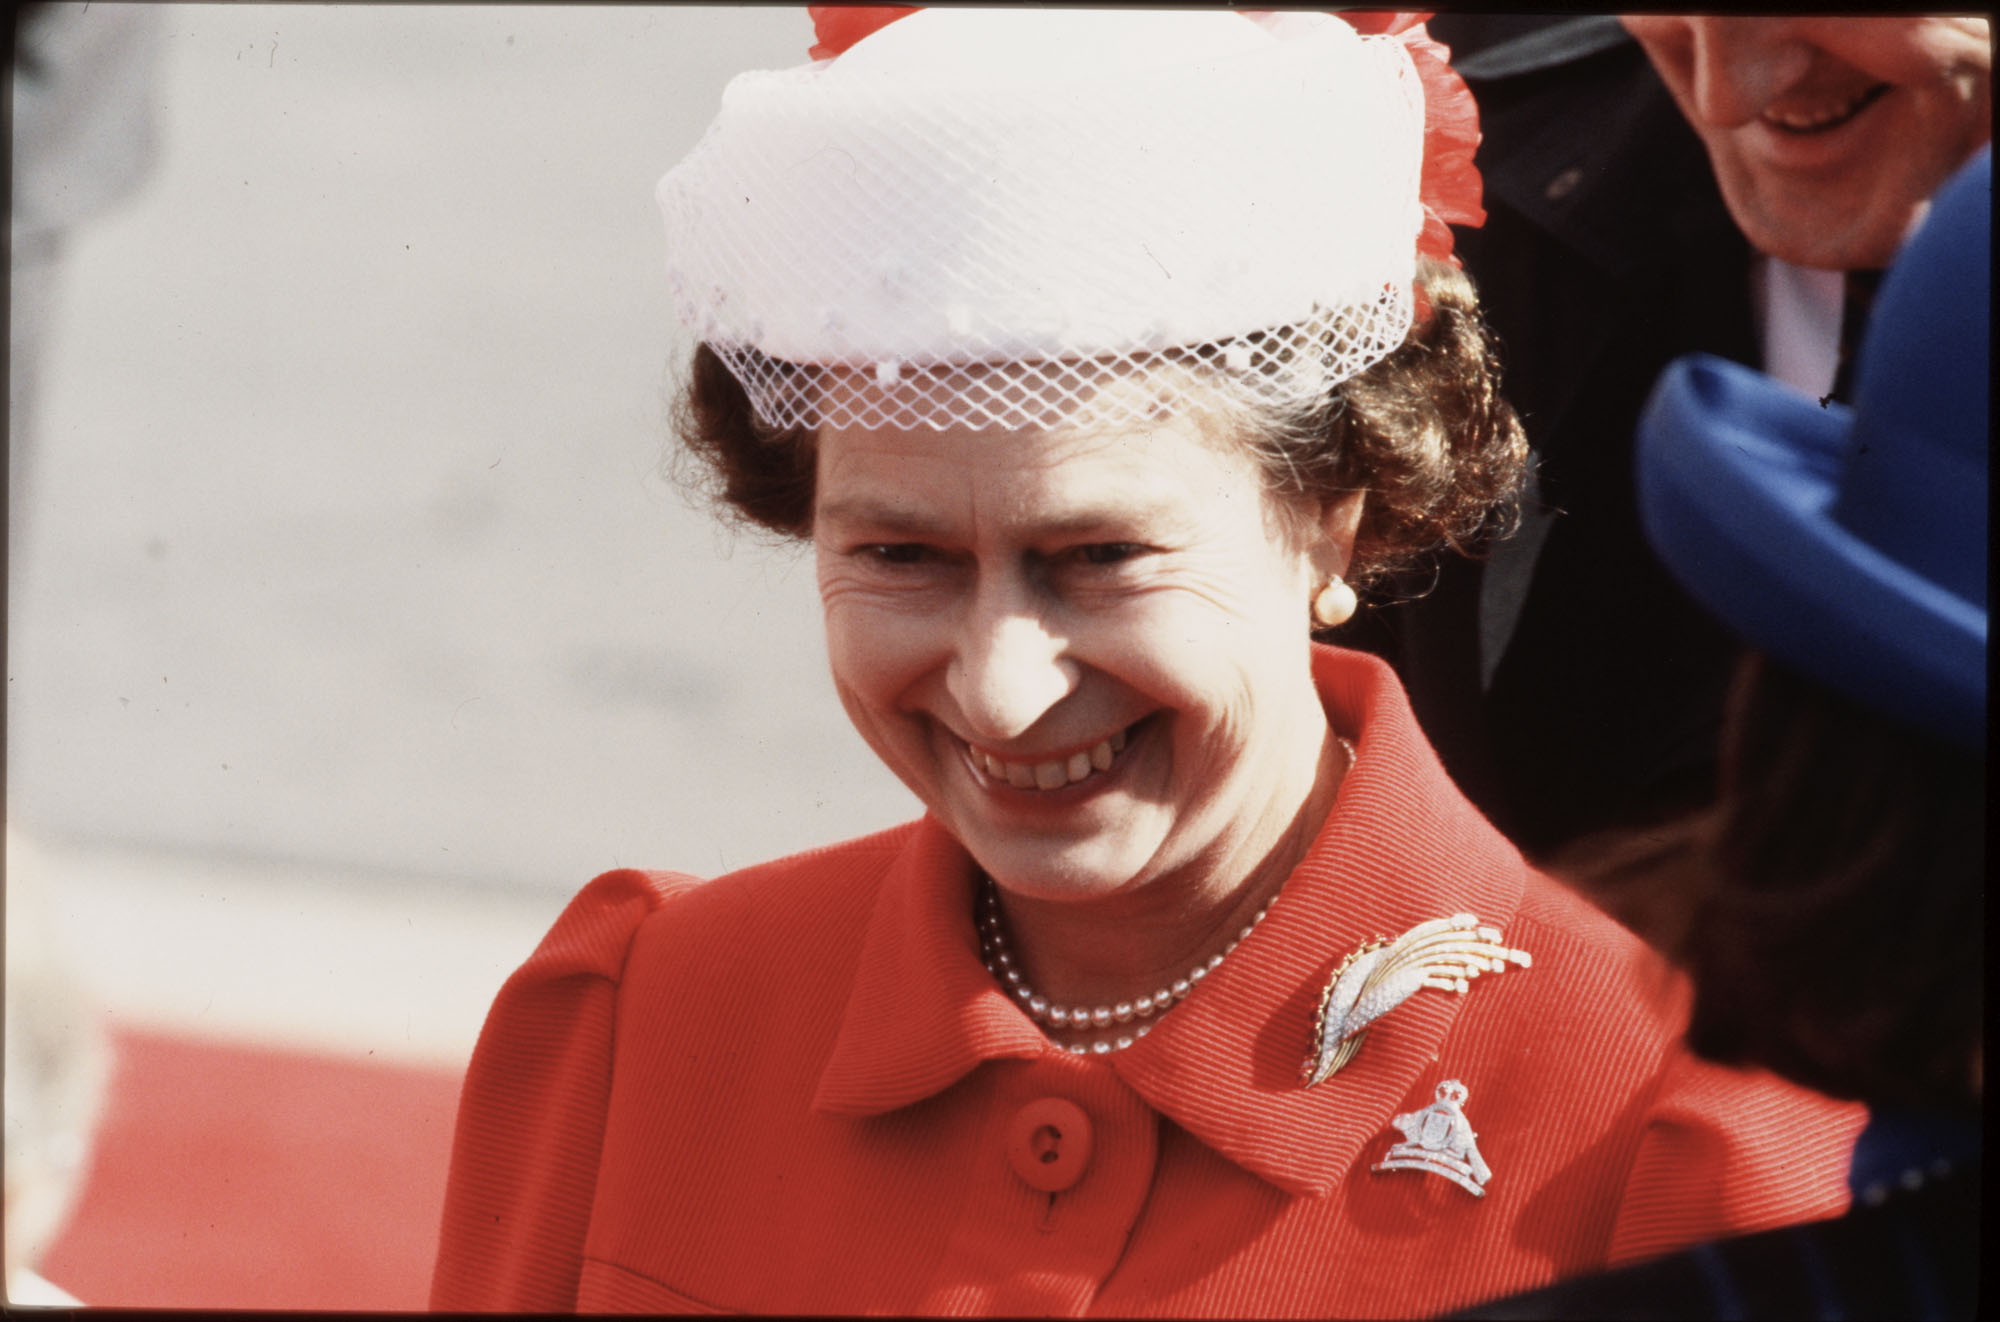 10 Things You Didn't Know About the Queen